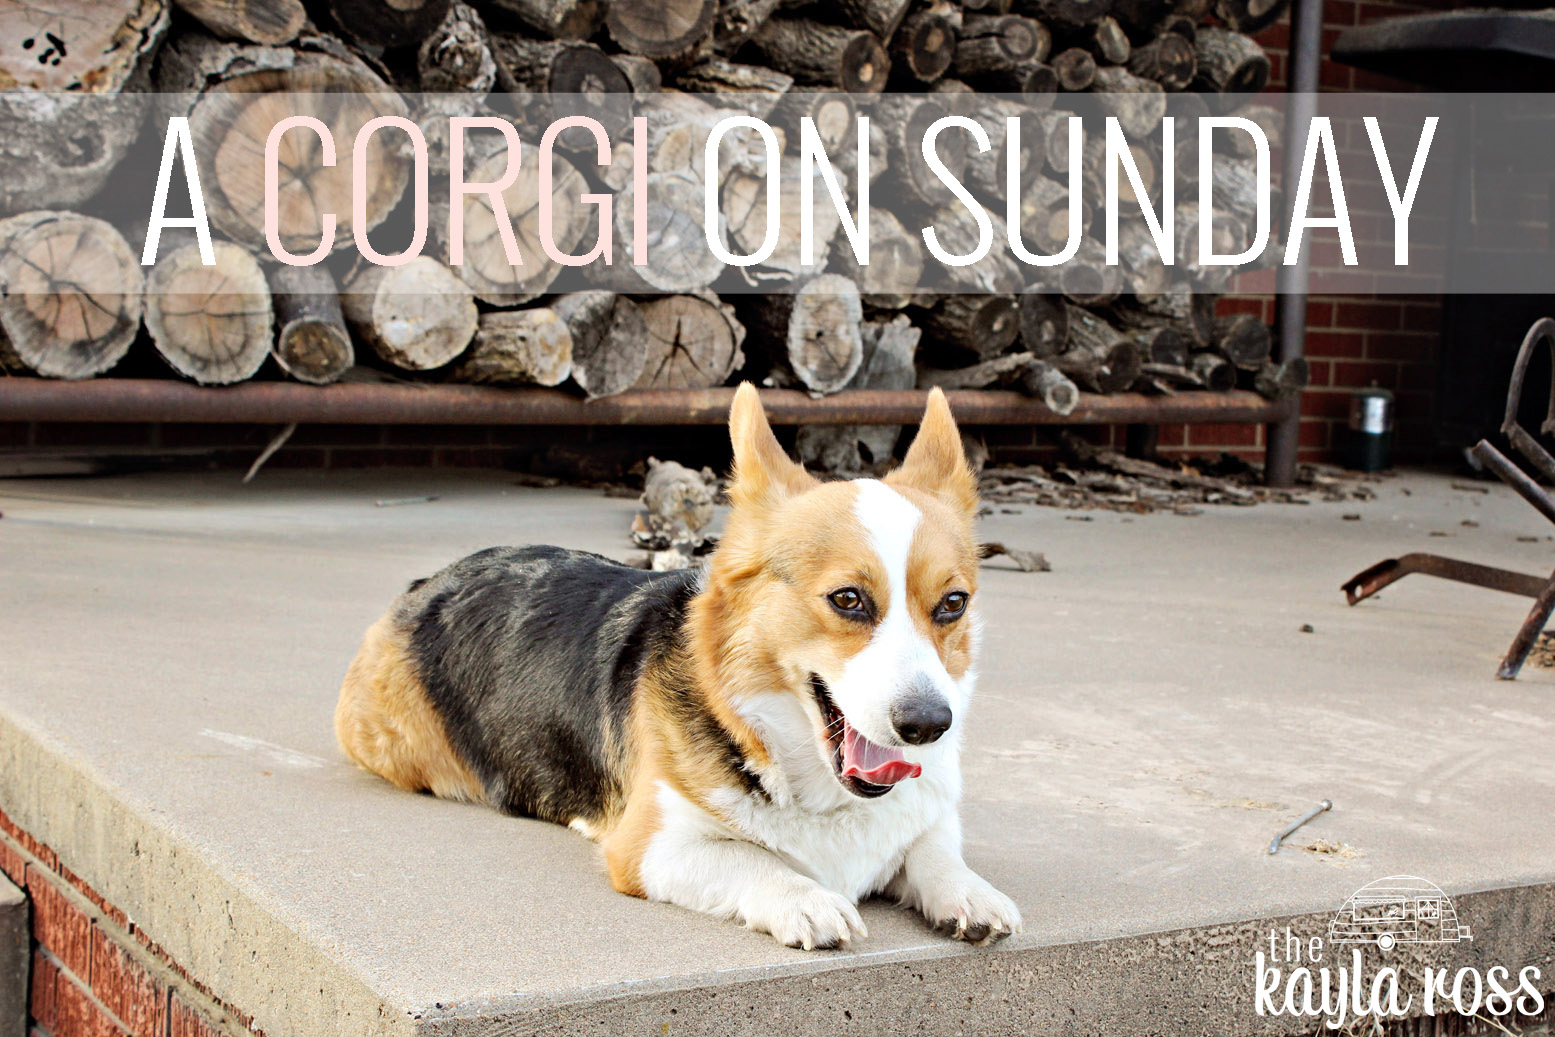 a_corgi_on_sunday_the_kayla_ross